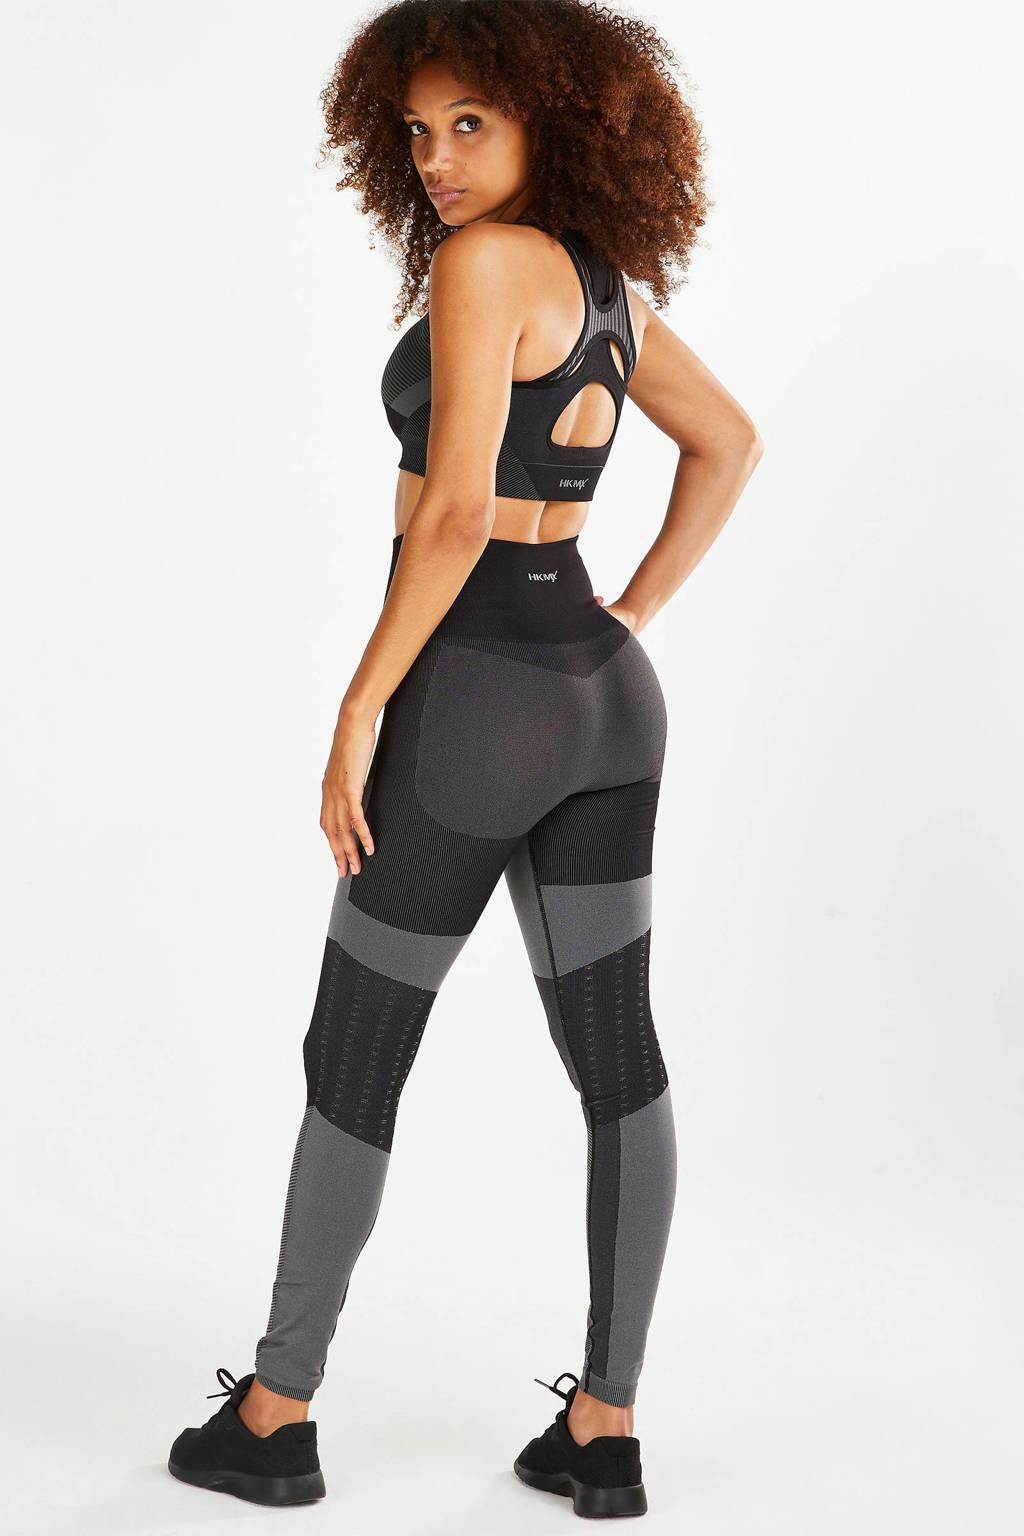 Hunkemöller sportbh The Motion Level 2 groen//zwart, Groen/zwart